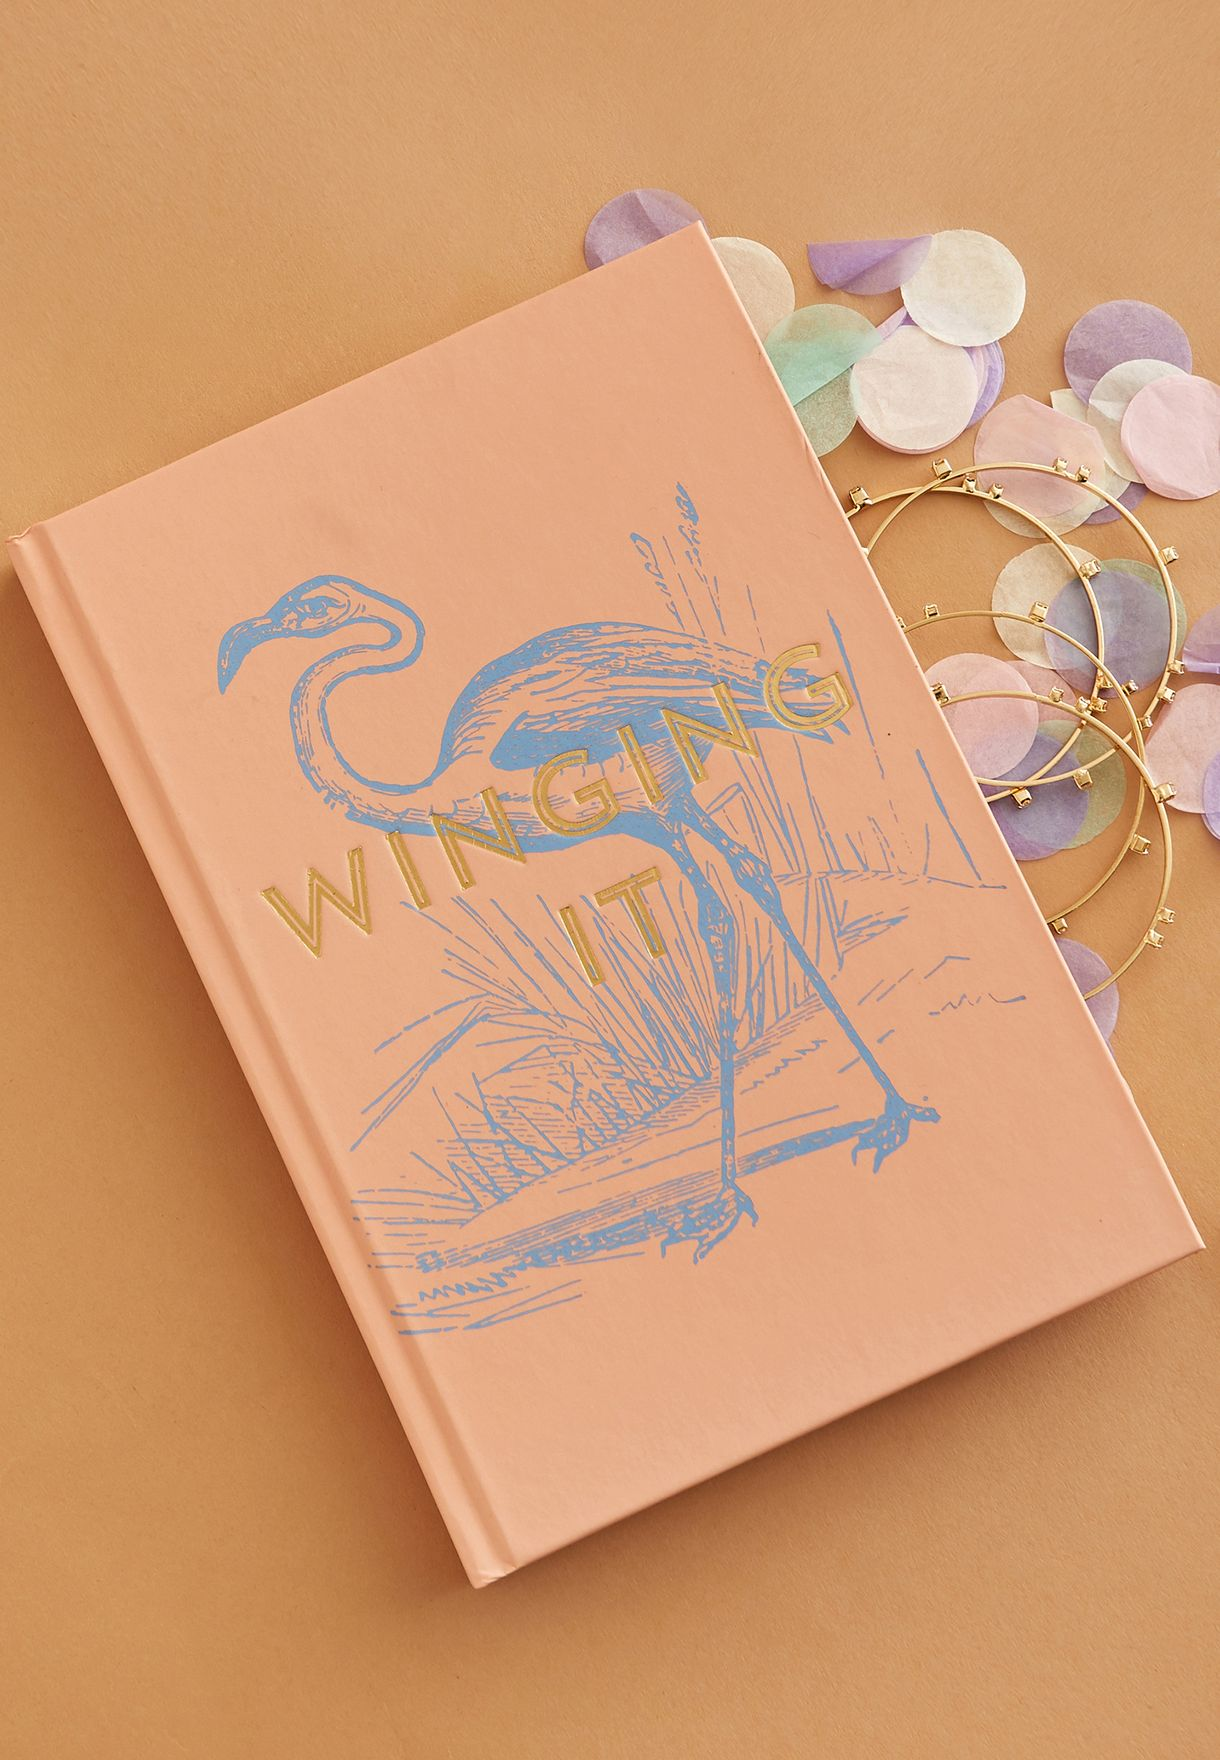 Winging It Notebook